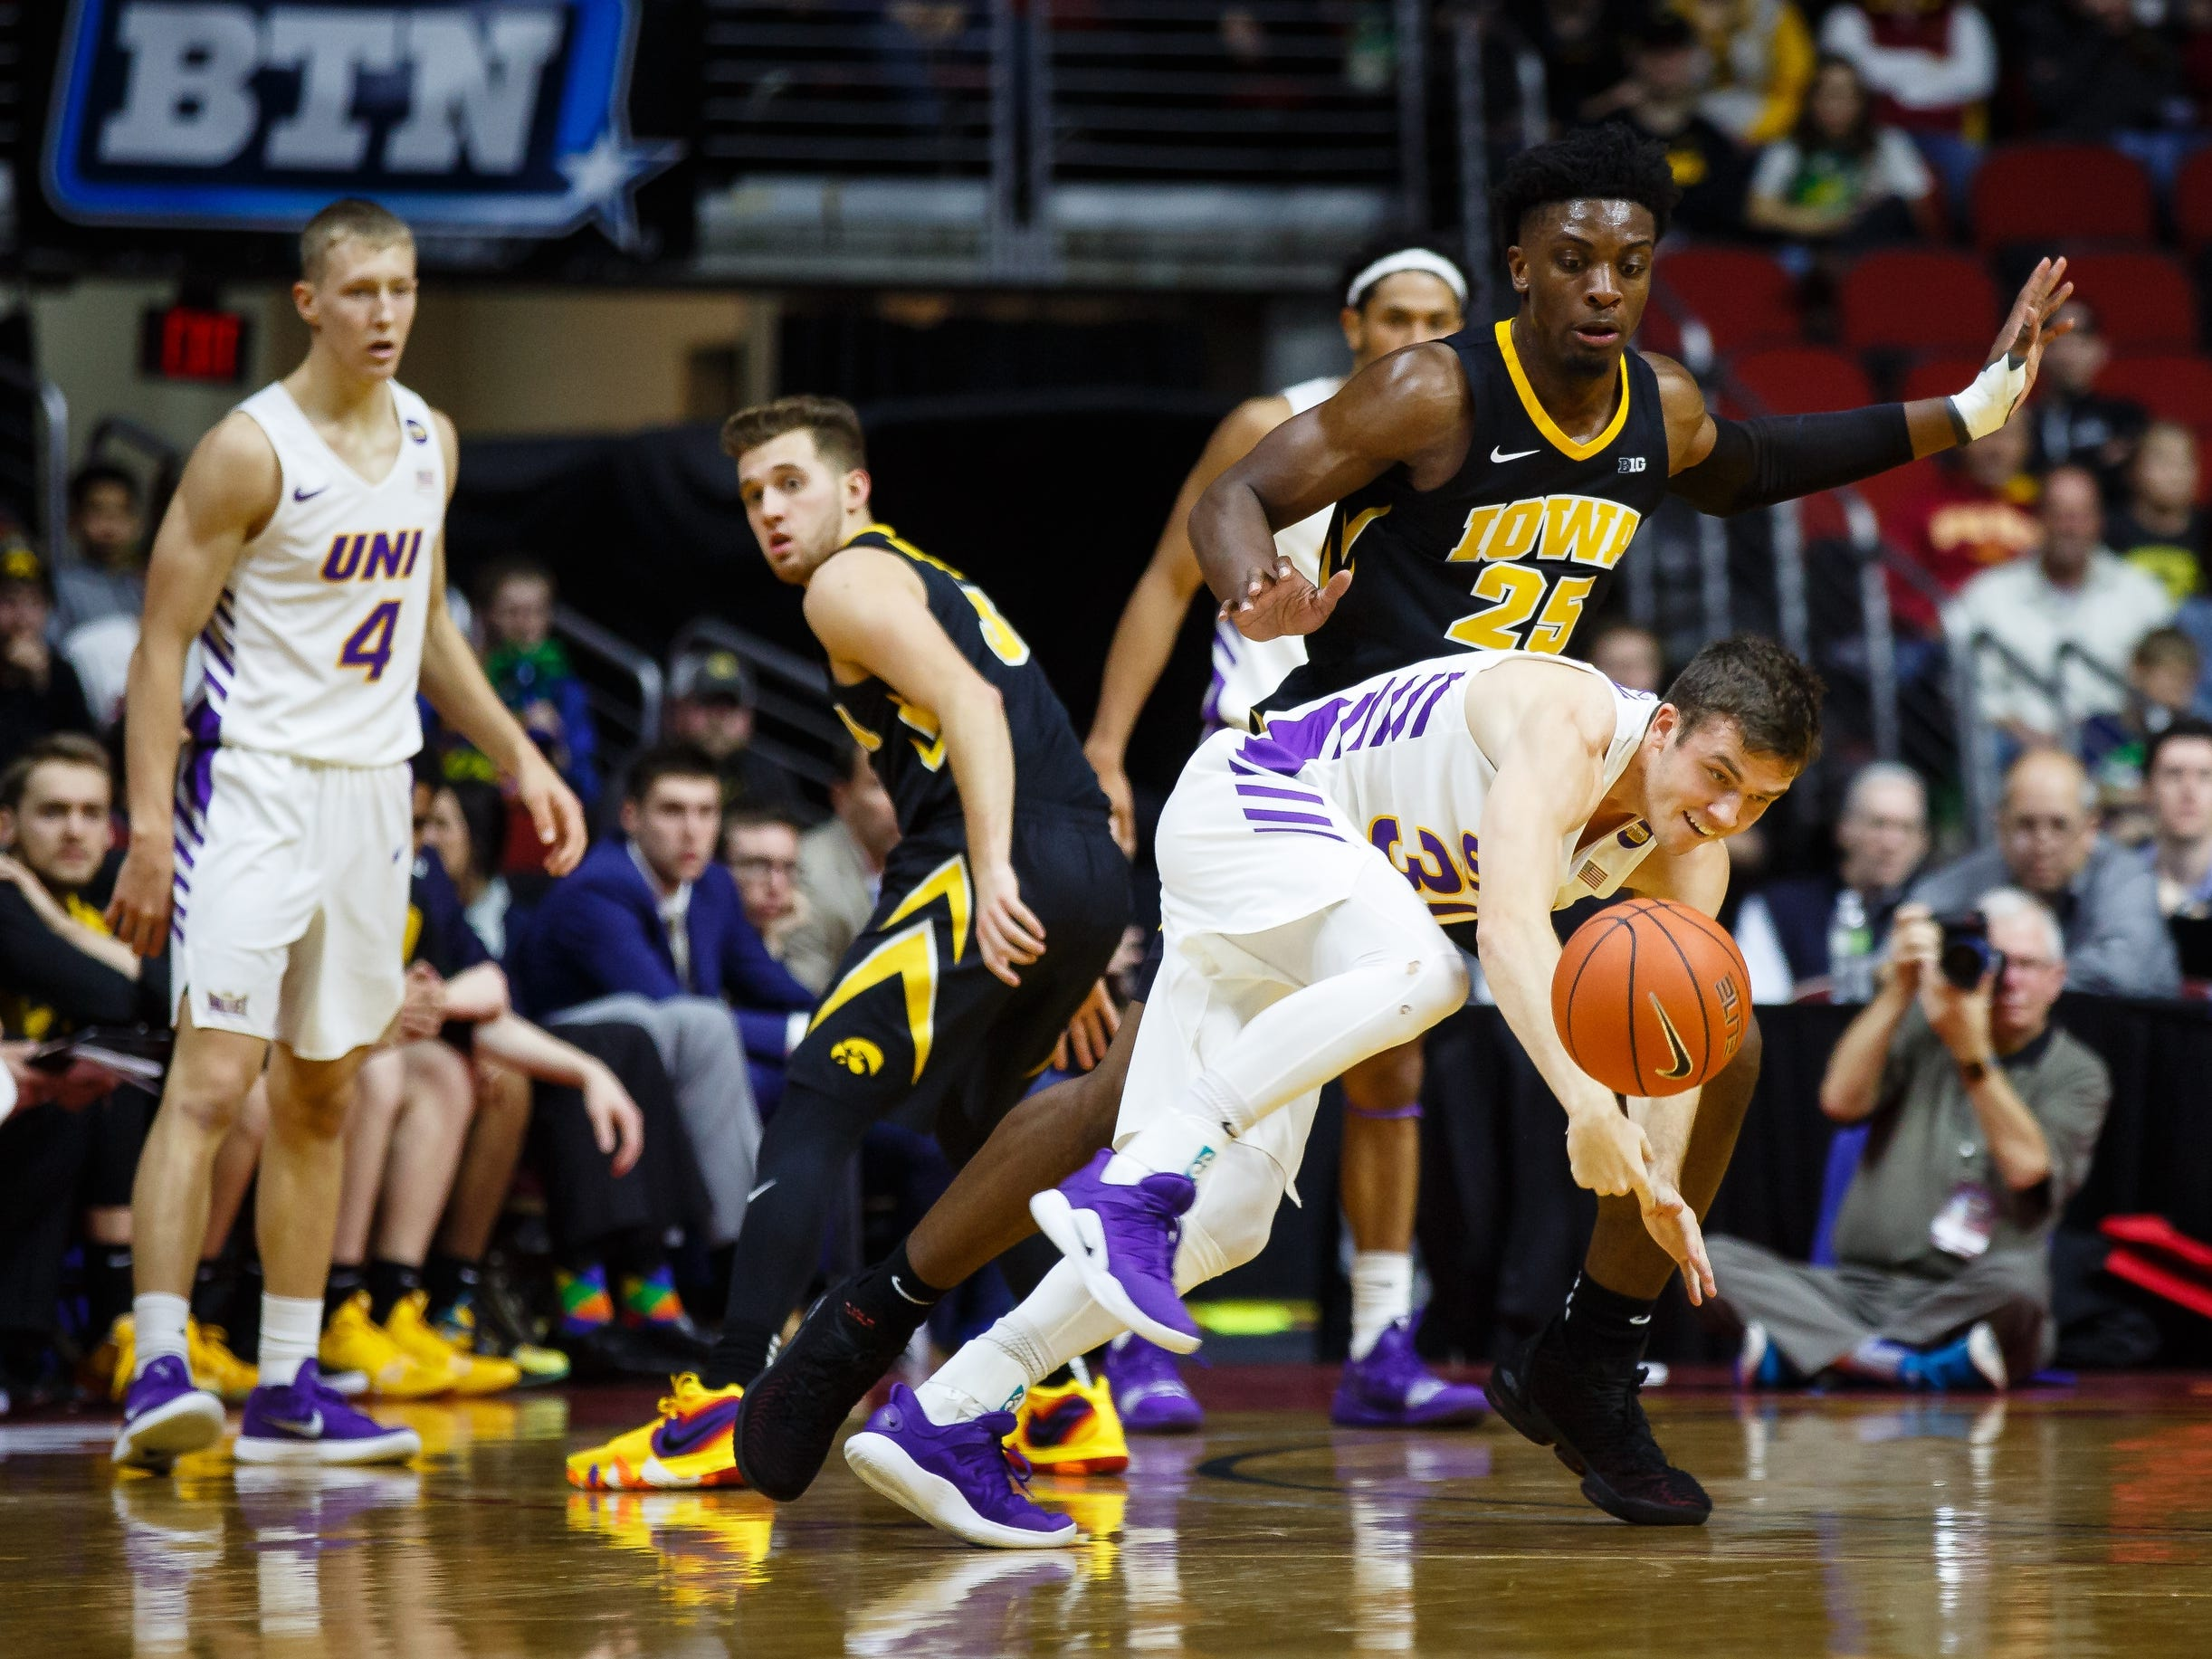 UNI's SpencerÊHaldeman (30) has the ball knocked away from him during their basketball game at the Hy-Vee Classic on Saturday, Dec. 15, 2018, in Des Moines. Iowa takes a 39-18 lead over UNI into halftime.